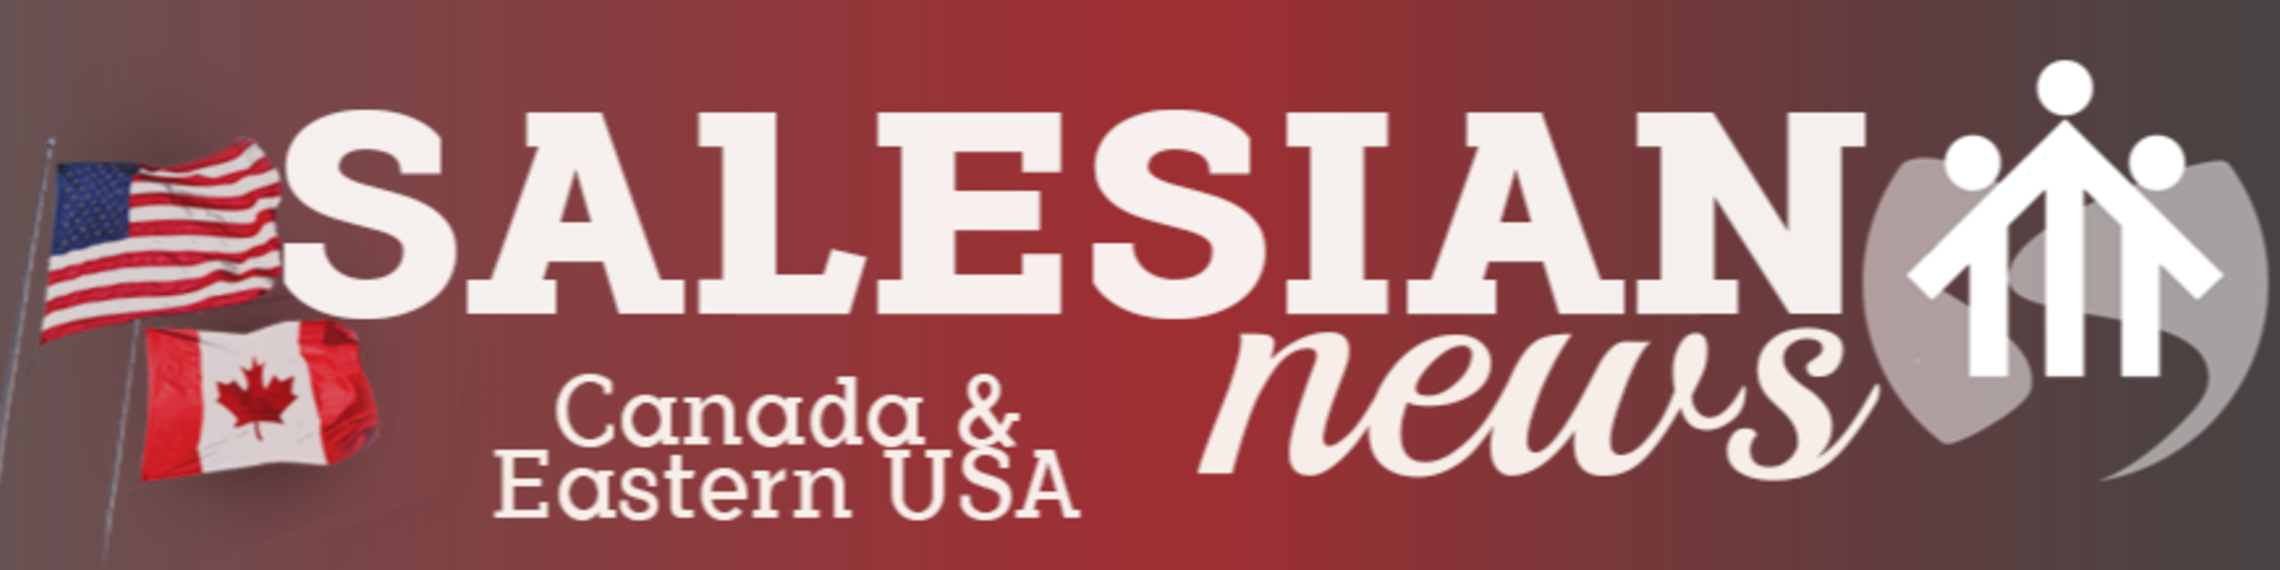 Salesian News Logo